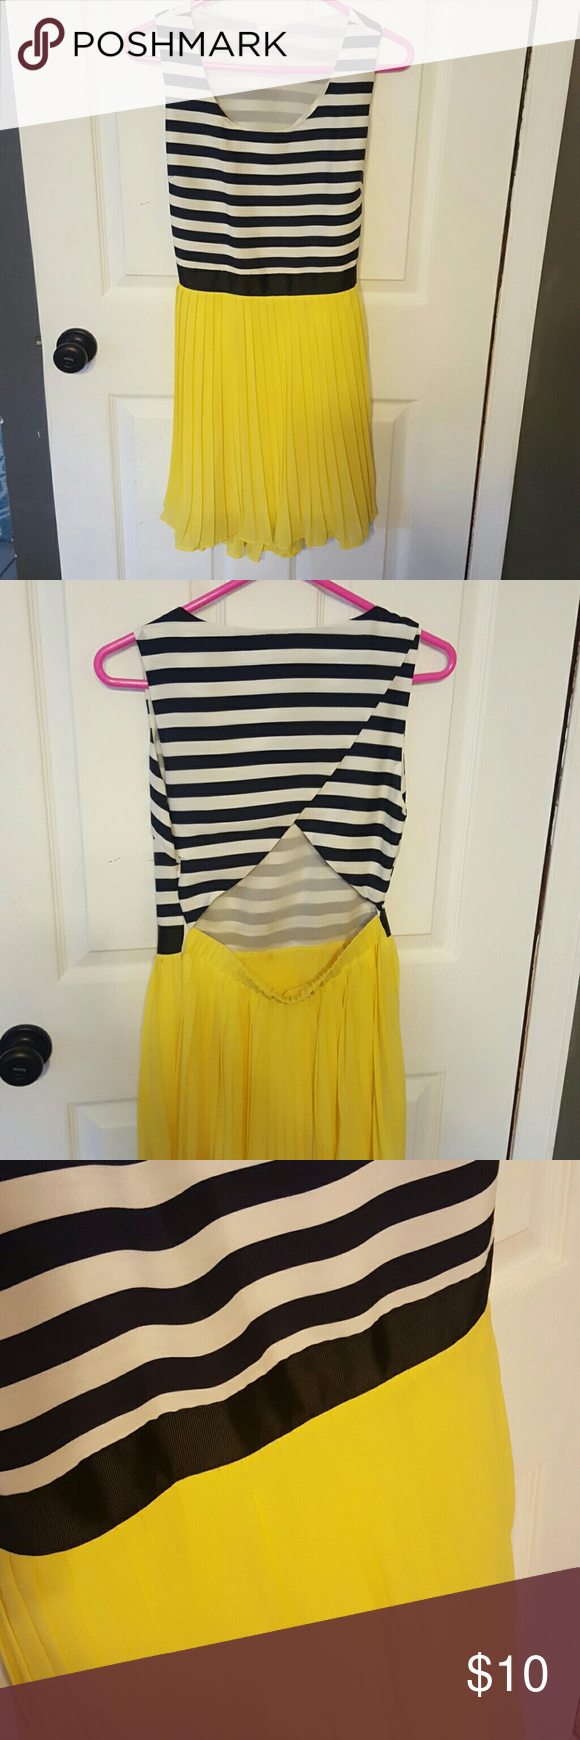 Gorgeous summer dress Navy stripes with yellow dress with gorgeous open back. Never worn. Bought it and never found a place to wear it to! Charming Charlie Dresses Midi